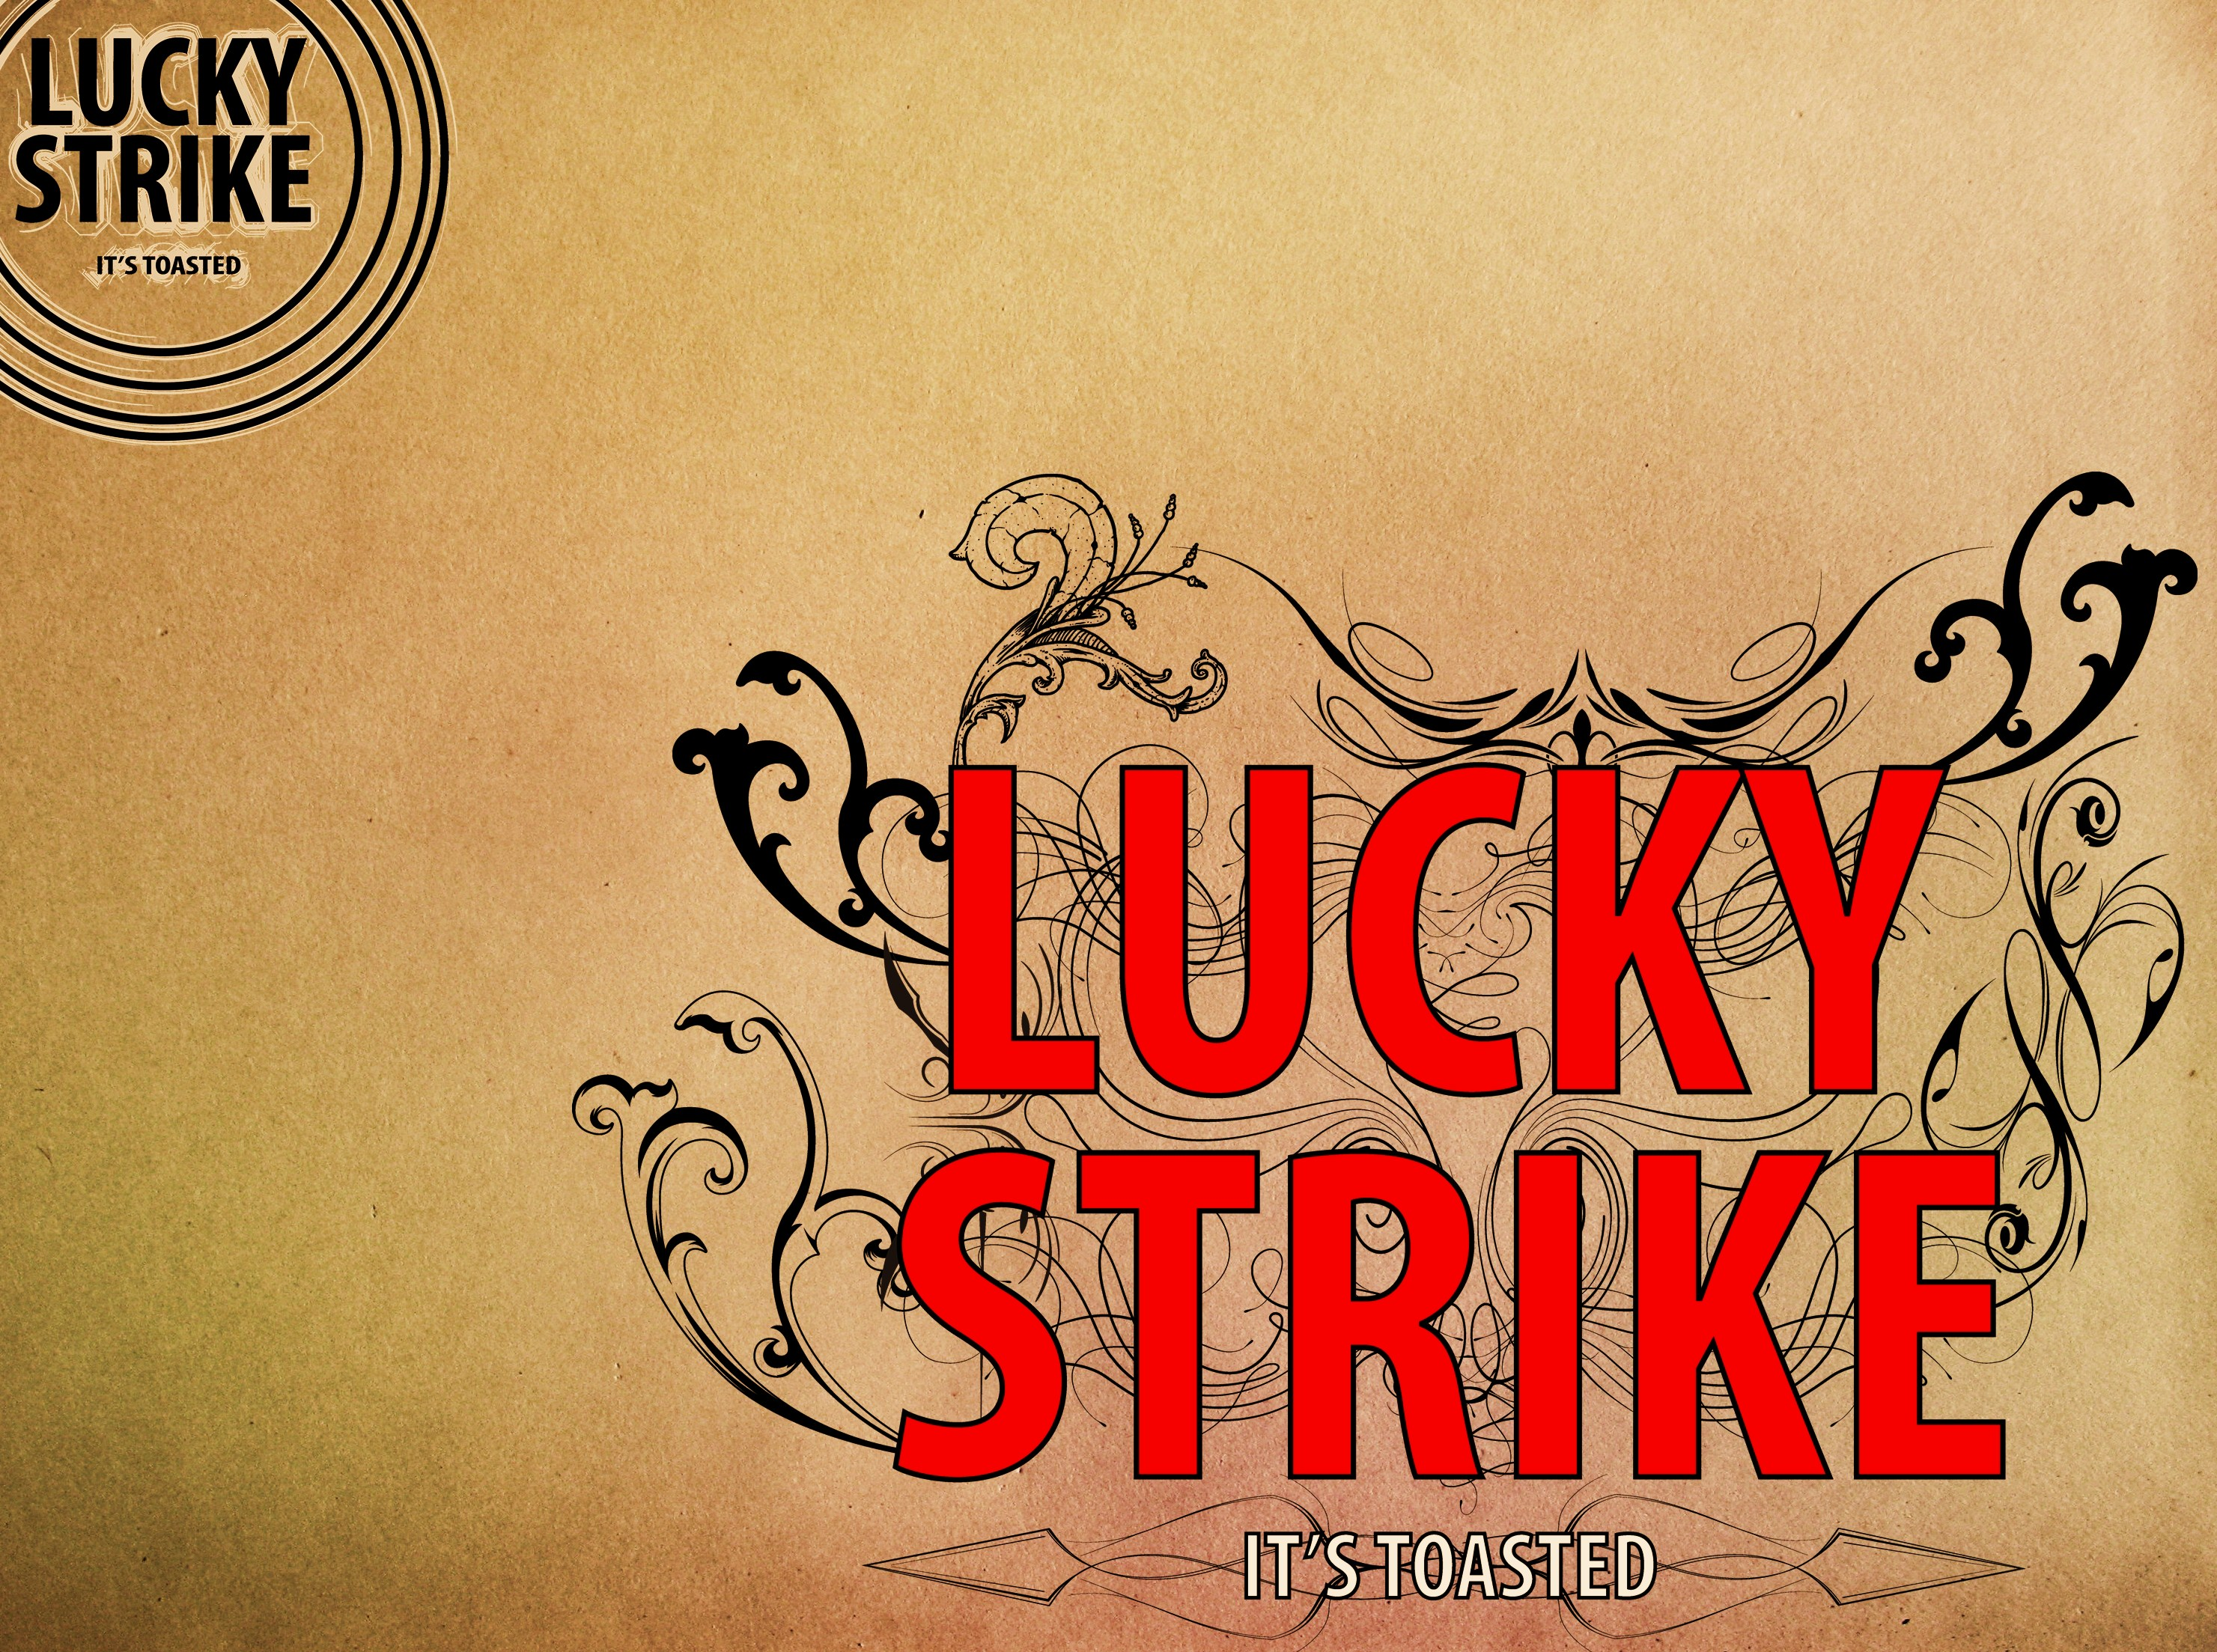 Lucky Strike wallpapers are You can download the full size 2961x2207